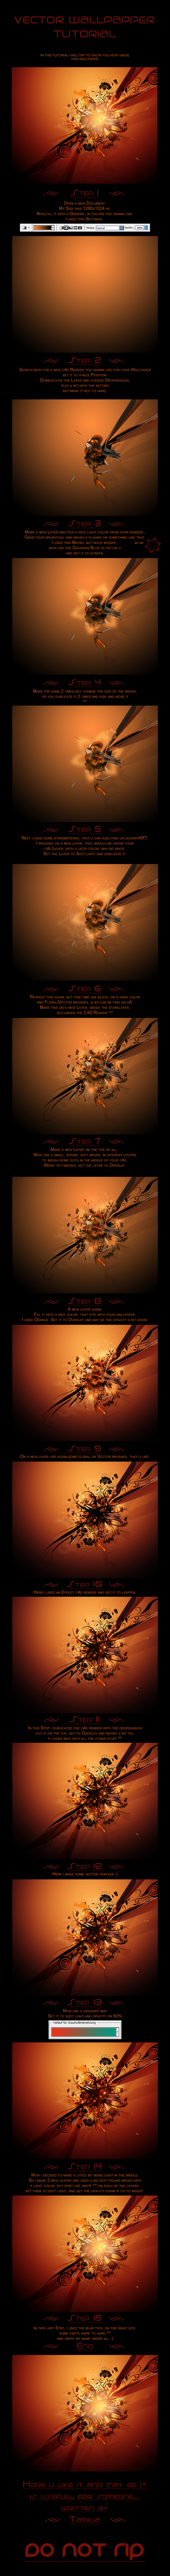 PHOTOSHOP Tutorial : Vector Wallpaper. « on: March 01, 2008, 03:09:23 PM »